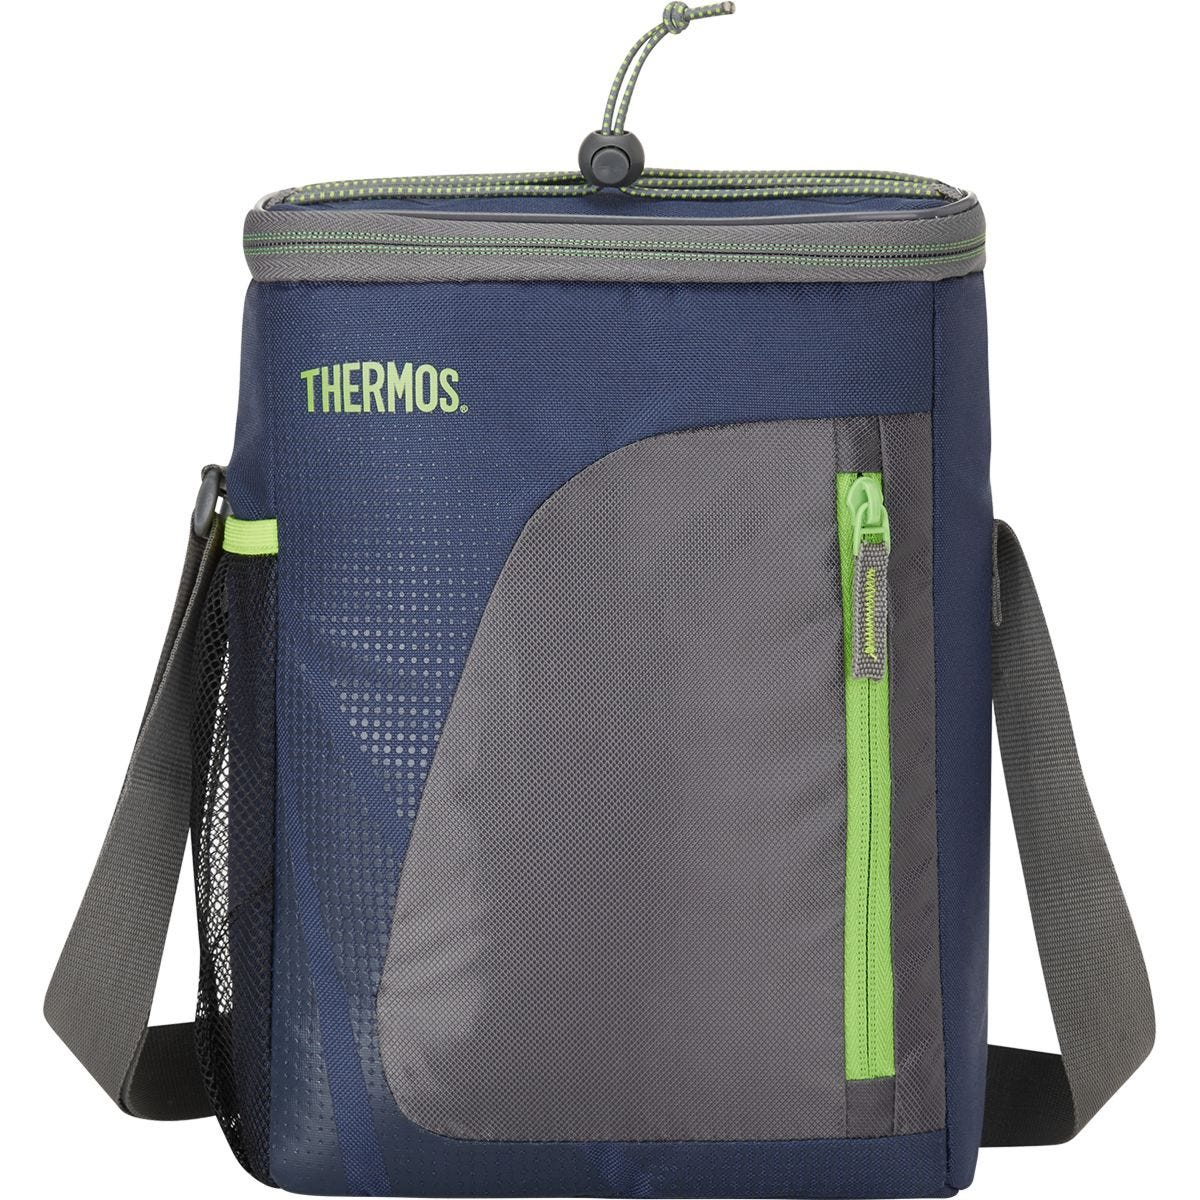 Thermos  Radiance Cooler 12 Can/8.5L - Navy